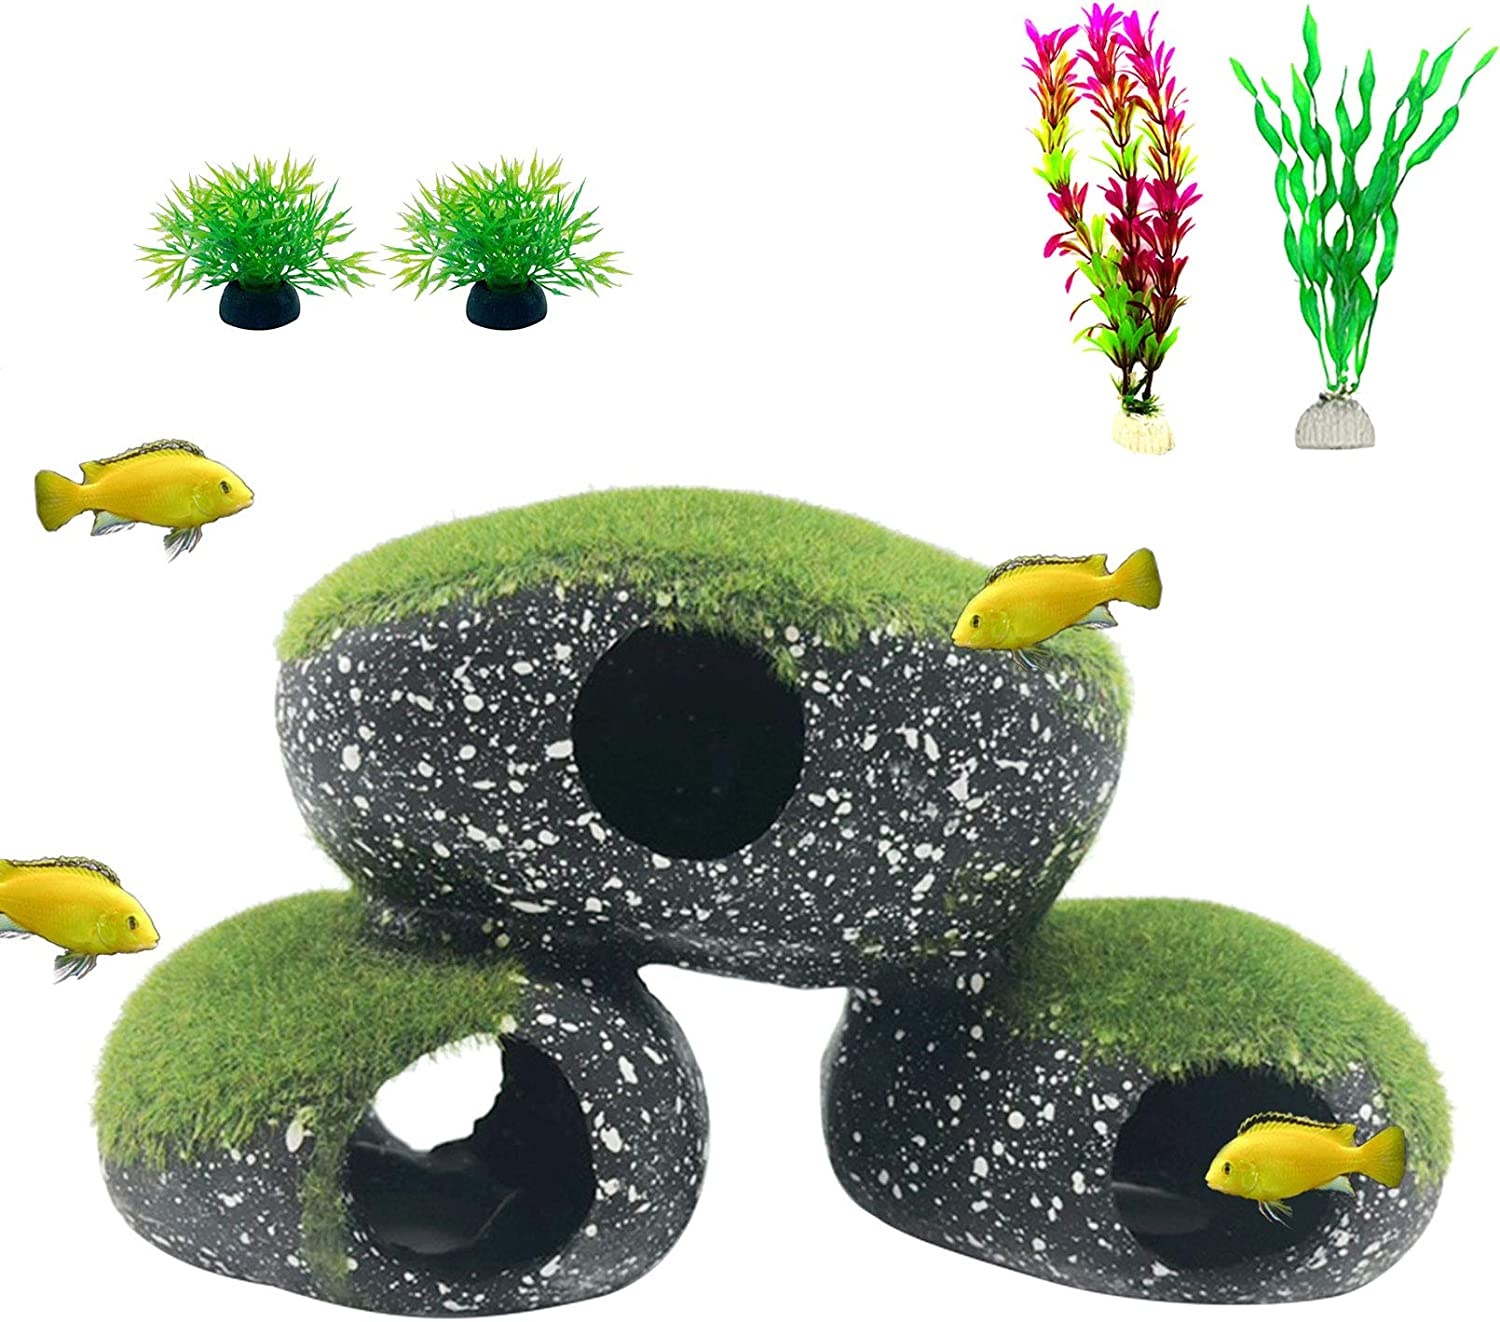 Tfwadmx Resin Cichlids Rock Decor Stone Aquarium Hideaway Decoration with Artificial Moss Betta Cave Hideout Shelter Fish Tank Tunnel Ornament for Shrimp,Short Bream and Crayfish(M)